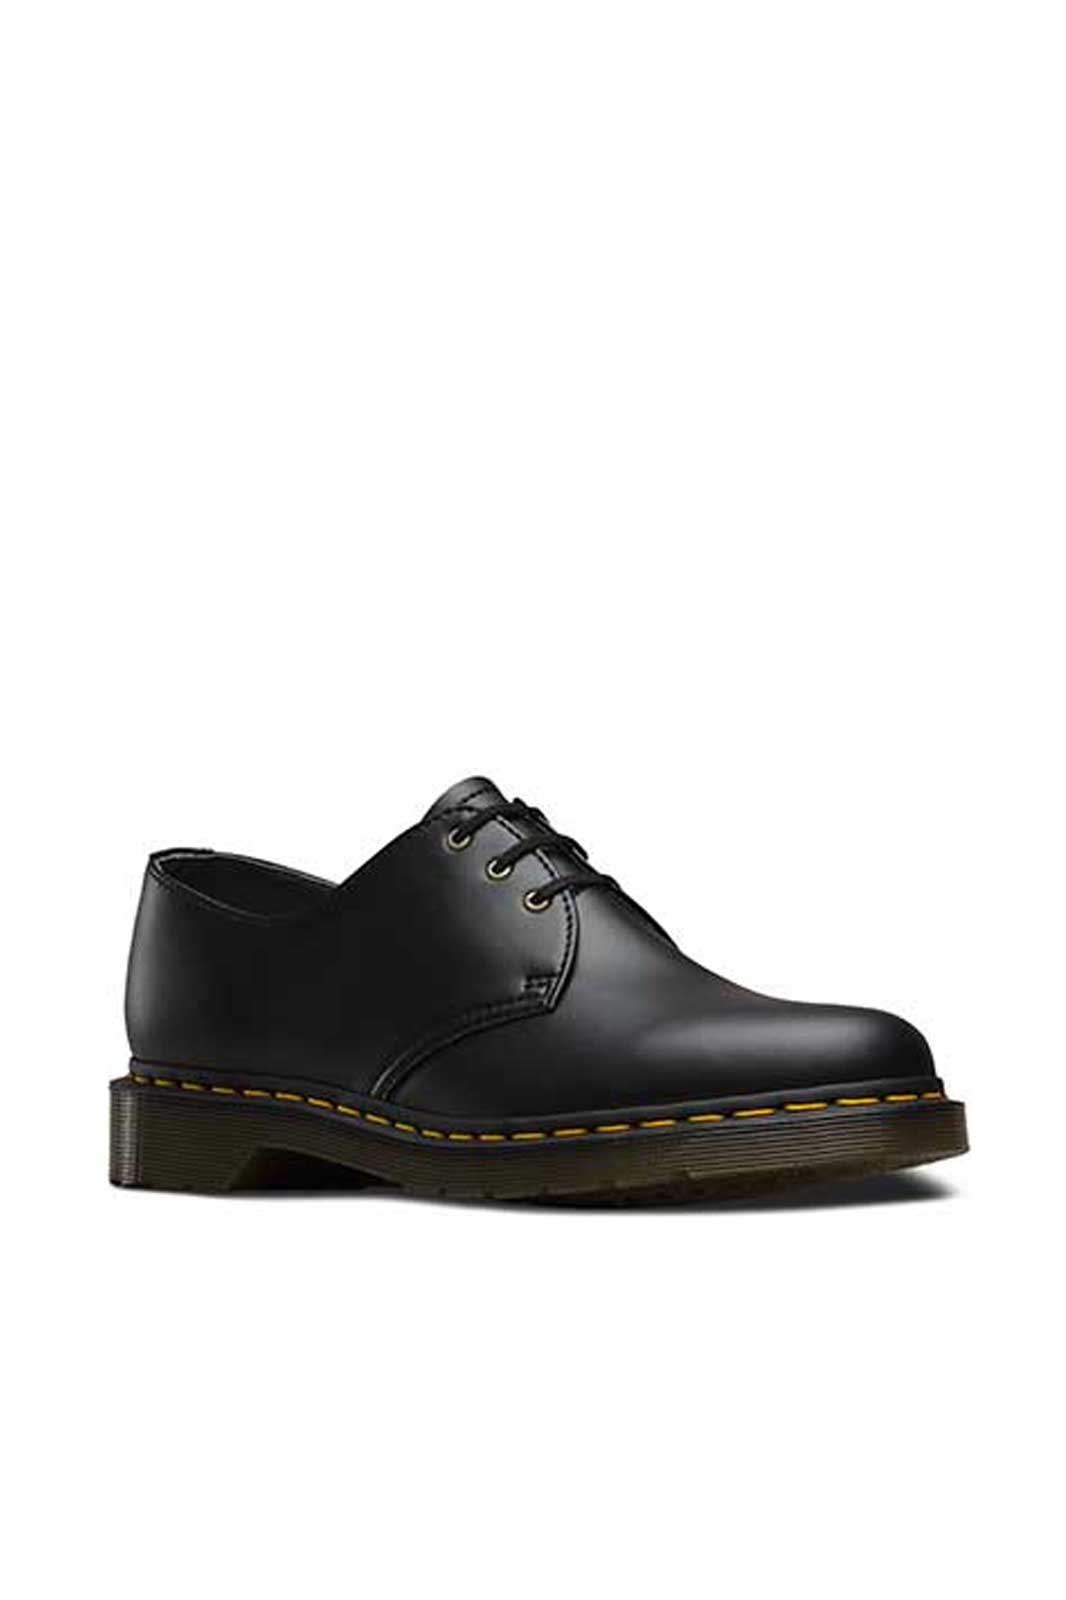 dr martens 1461 vegan 3 eye shoes black